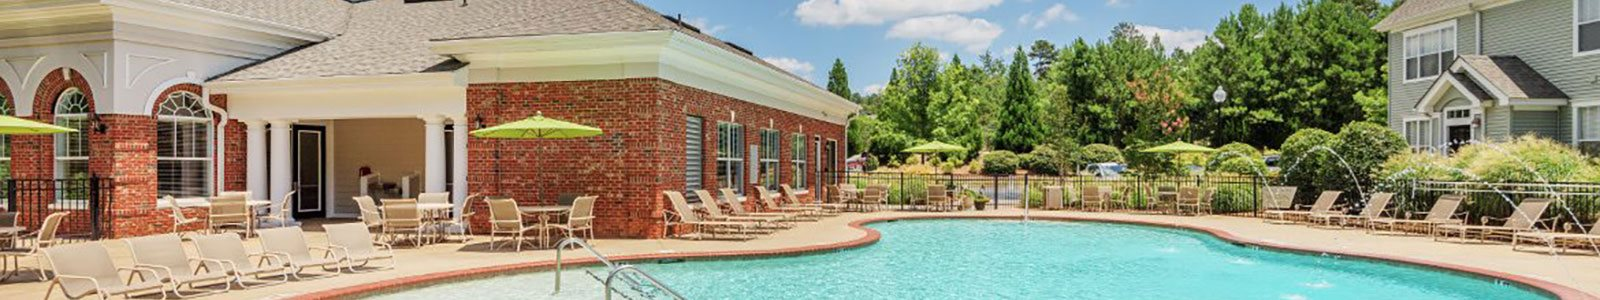 Poolside Sundeck With Relaxing Chairs at Millennium, Greenville, SC, 29607